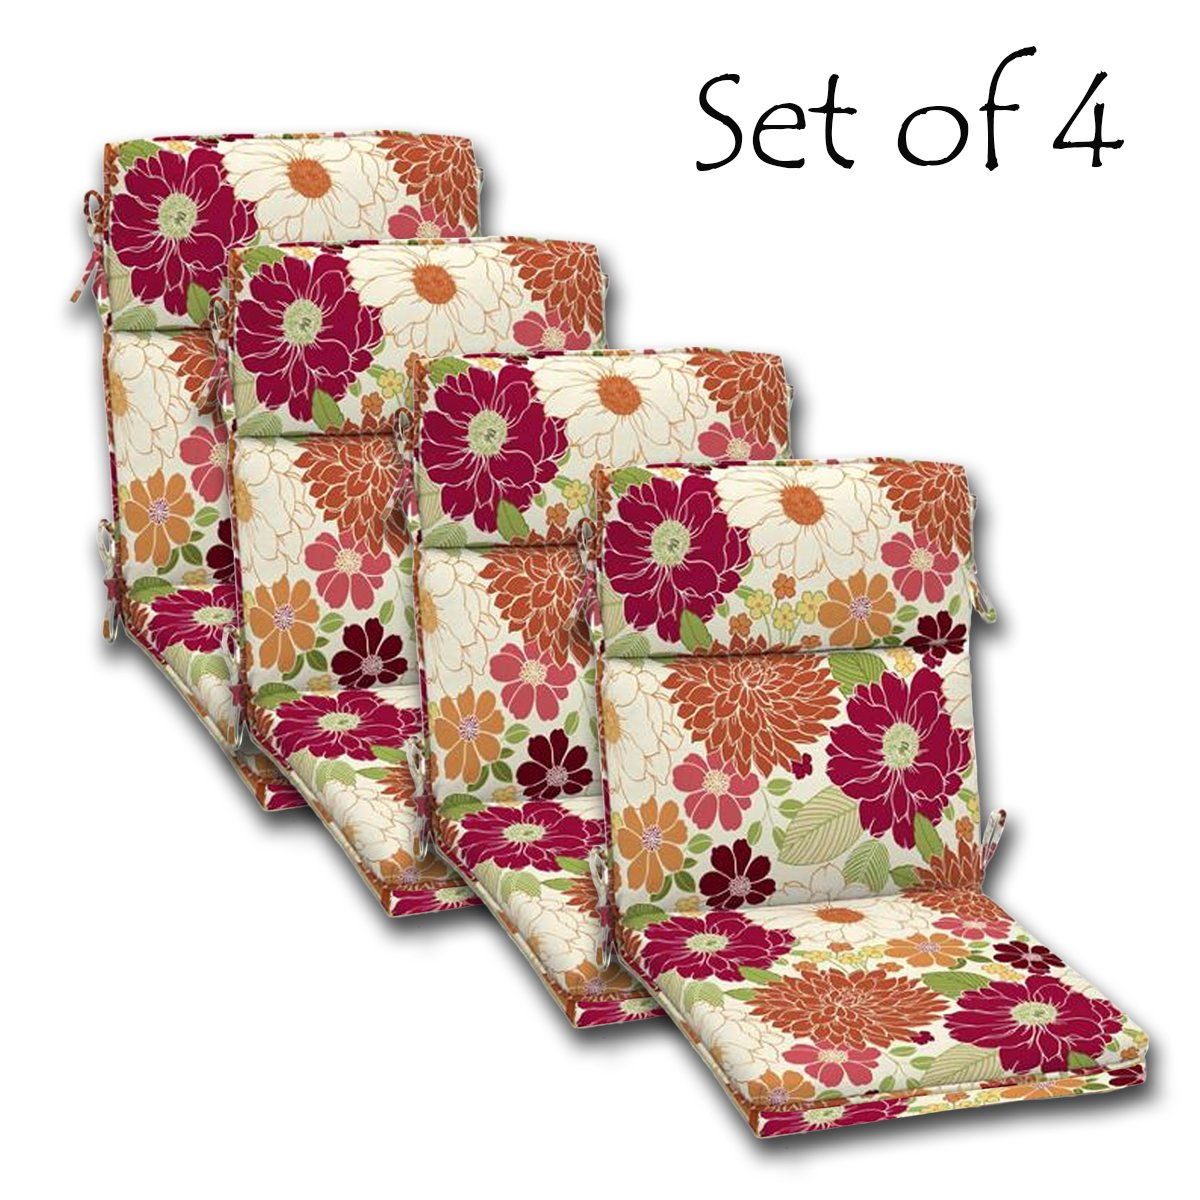 SET of 4 Outdoor Dining Chair Cushions, Single Welt and Zipper 44 x21x4.50 in Polyester fabric Sorbet Floral by by Comfort Classics Inc.